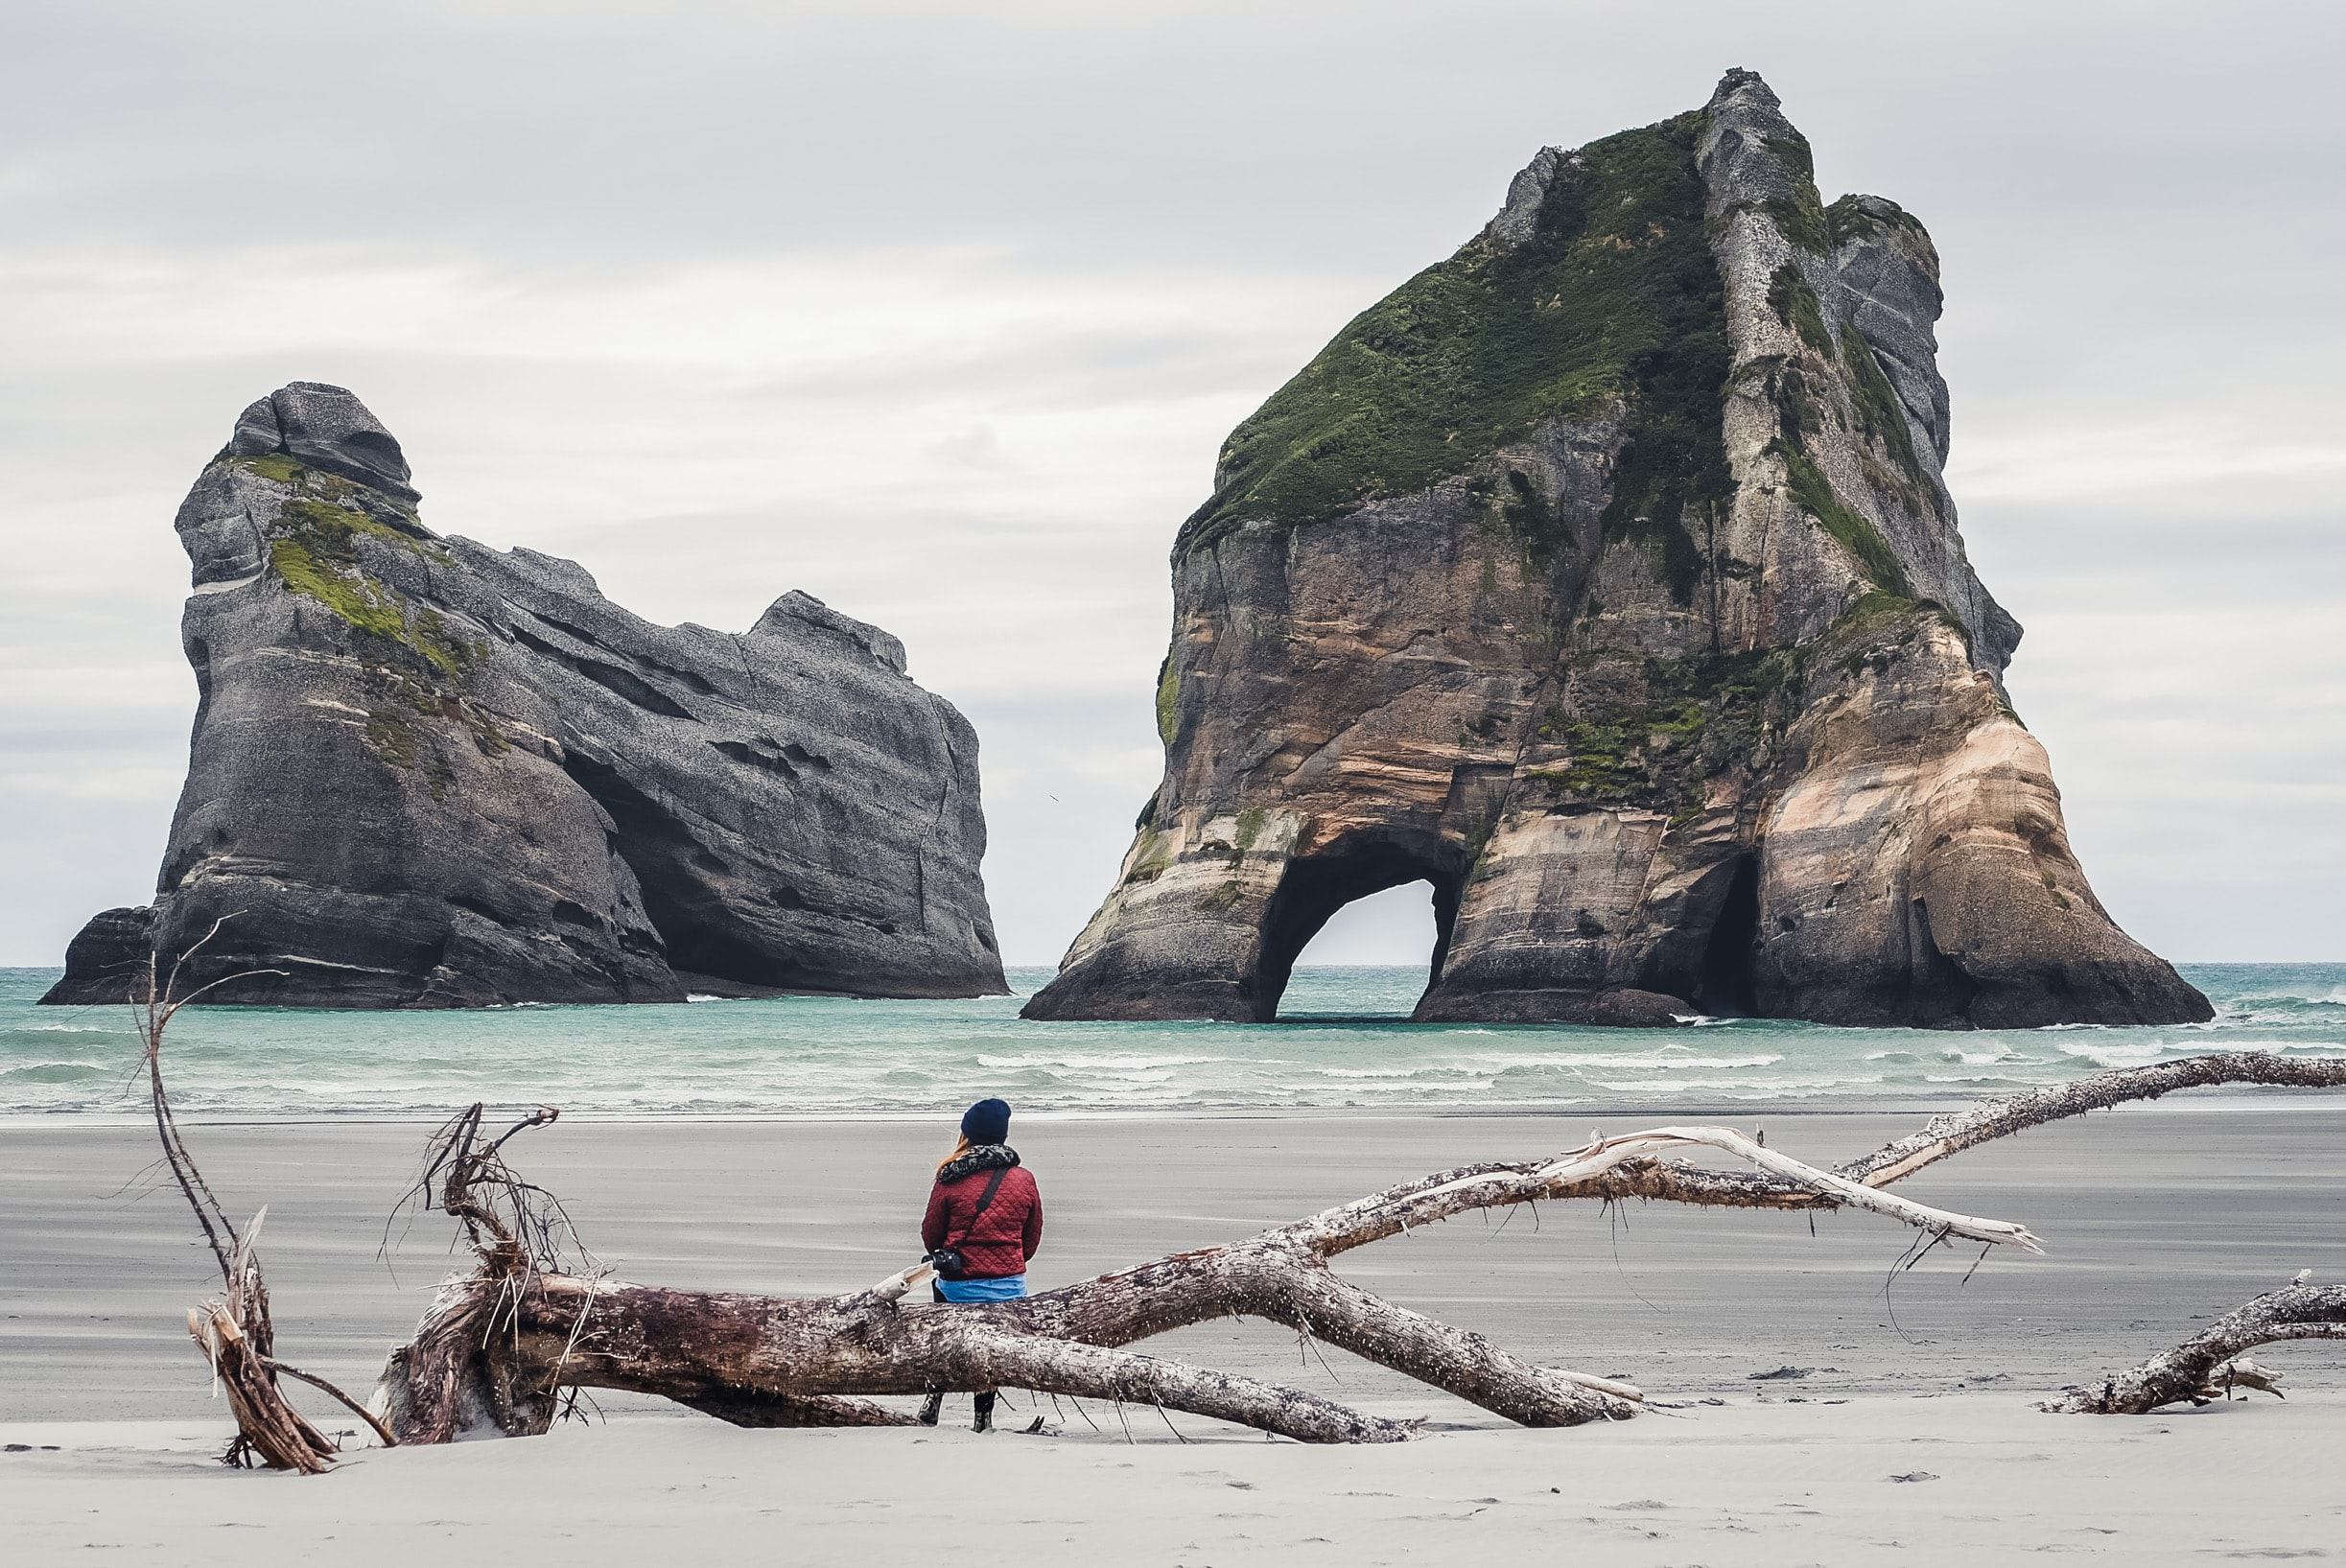 man sitting on driftwood in front of stack landform